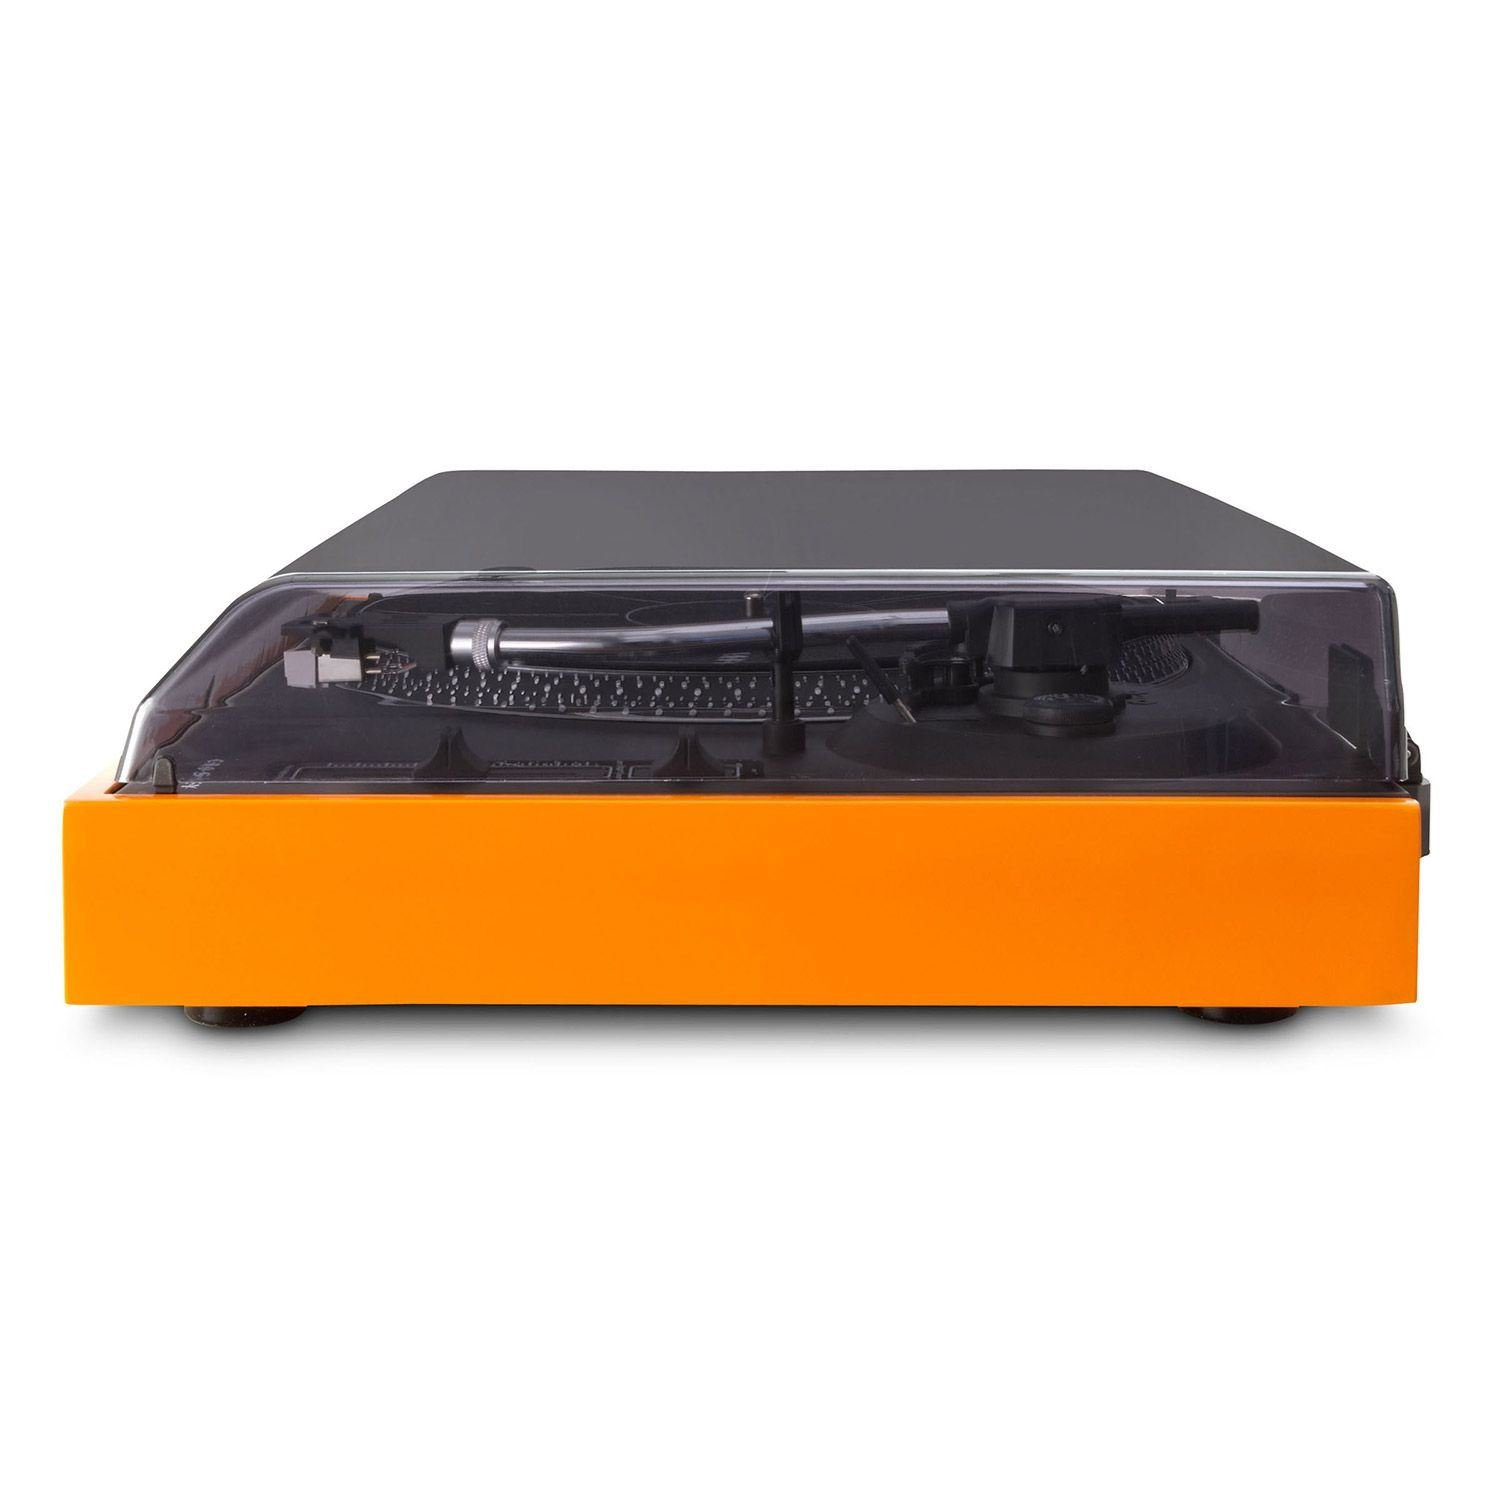 Picture of Advance Stereo USB Turntable, Orange *D